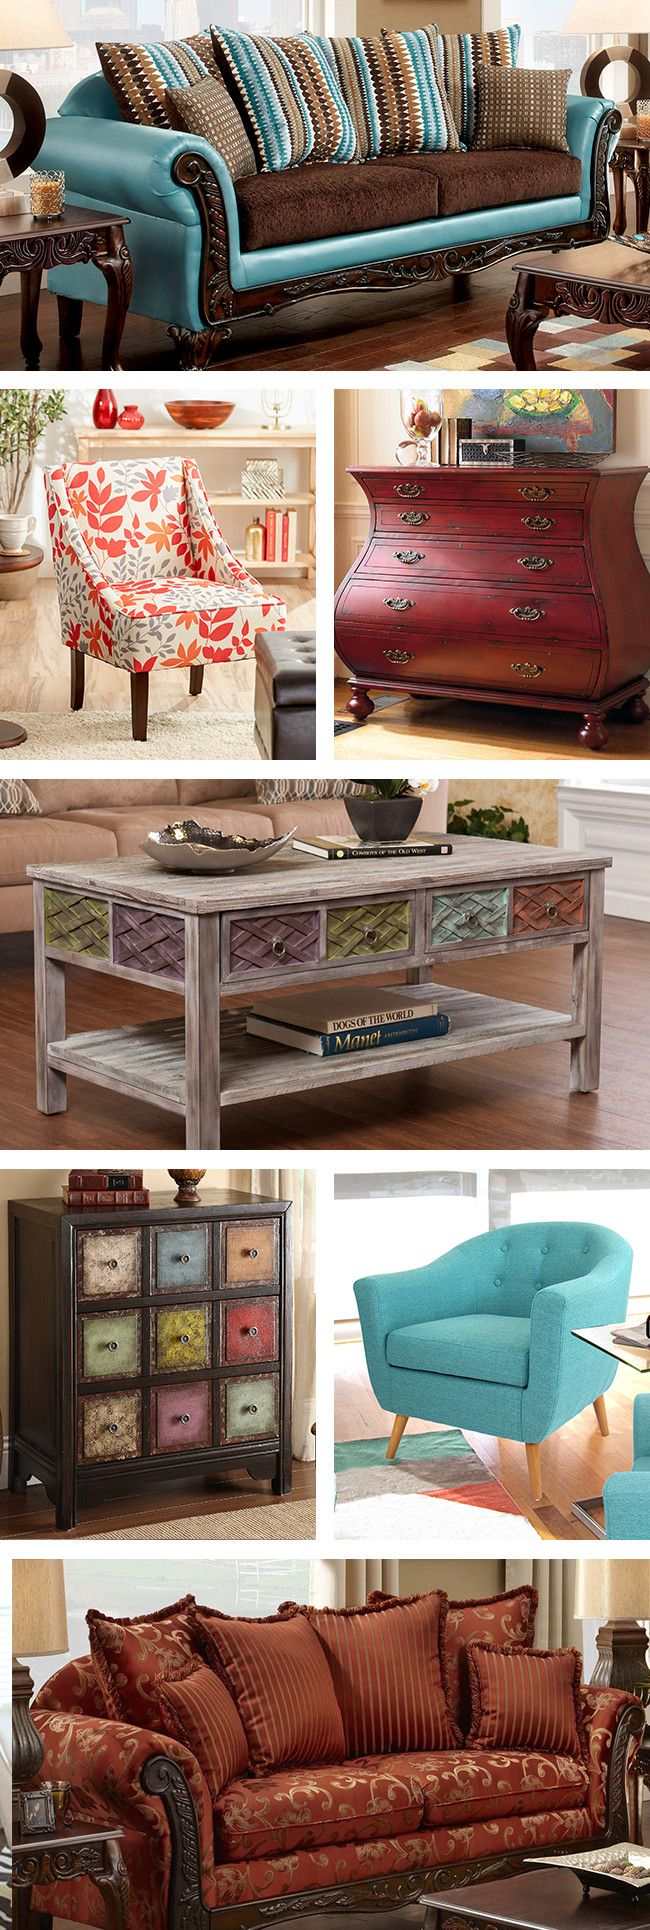 best home decorating images on pinterest creative ideas home